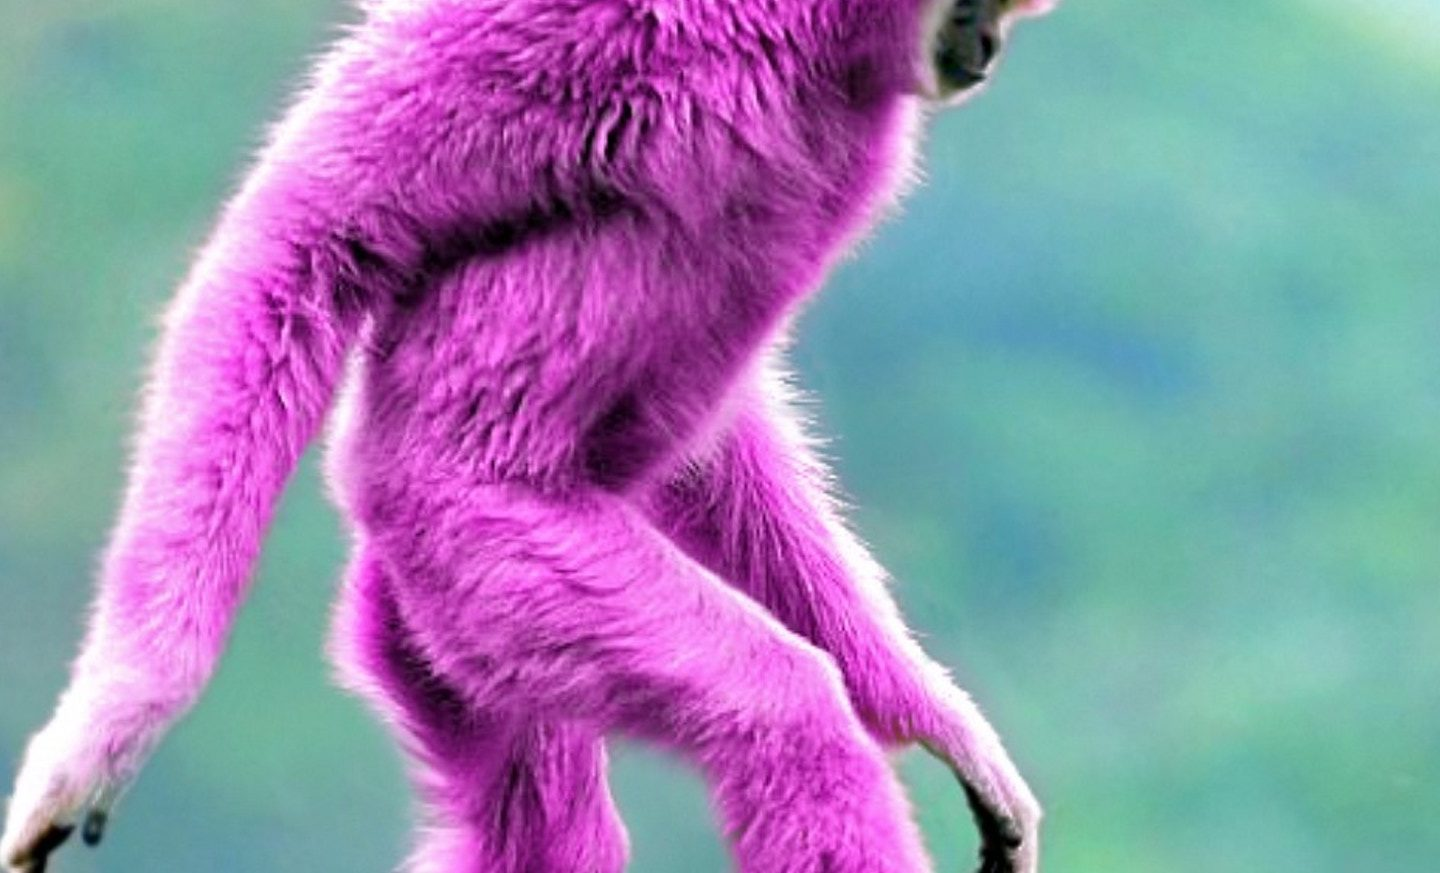 Don't think of a pink monkey. Don't think of a pink monkey. Don't think of a pink monkey.